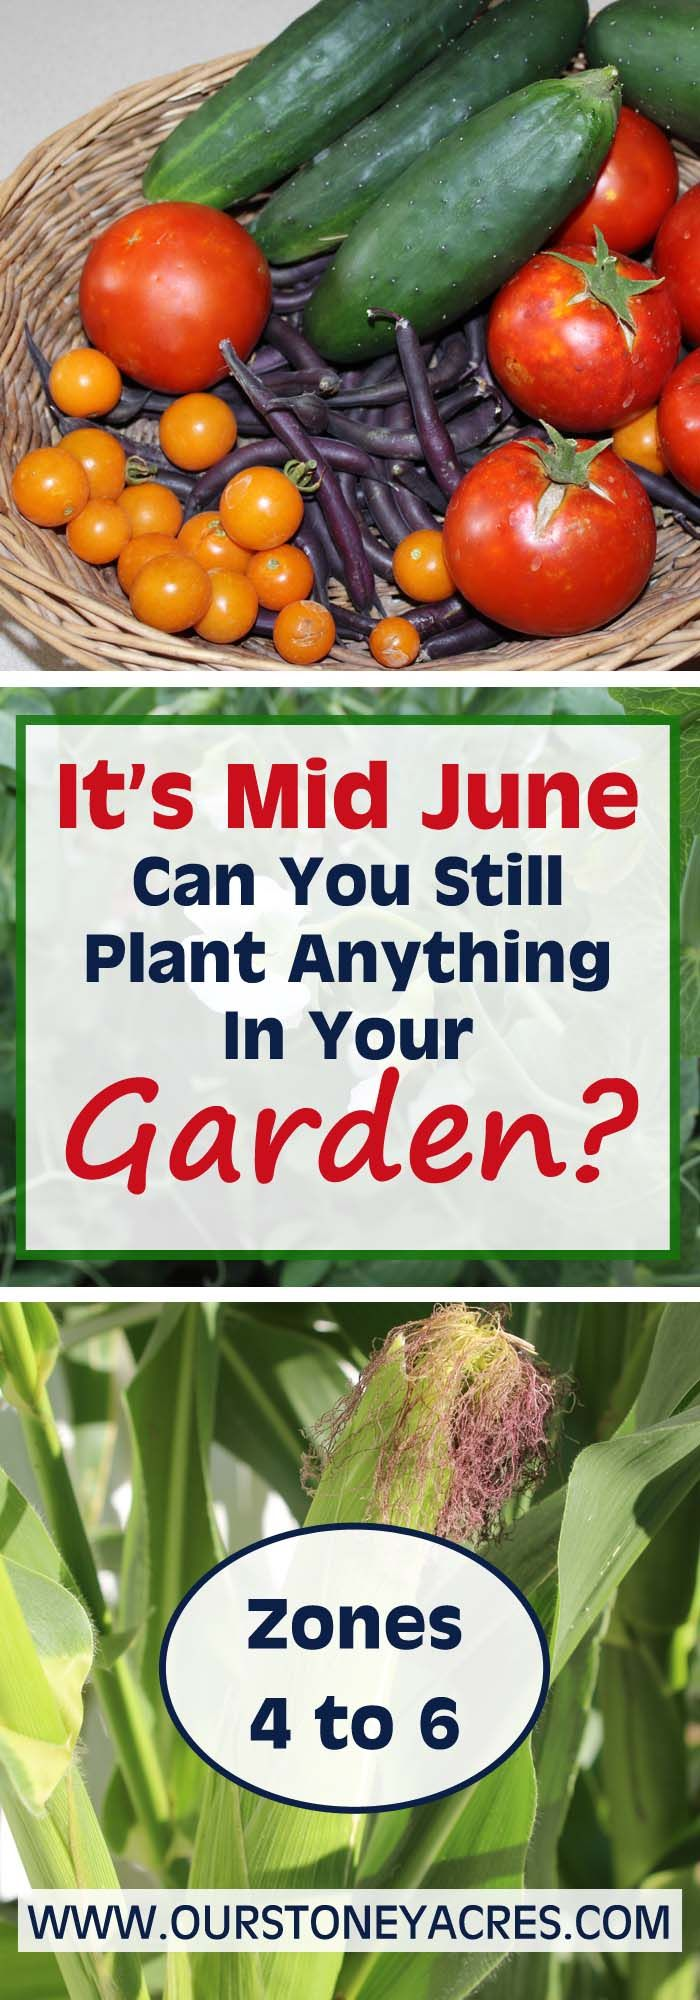 It's the middle of June and you haven't planted your garden yet. What is there that you can still plant and get a harvest before the frost comes in the fall?